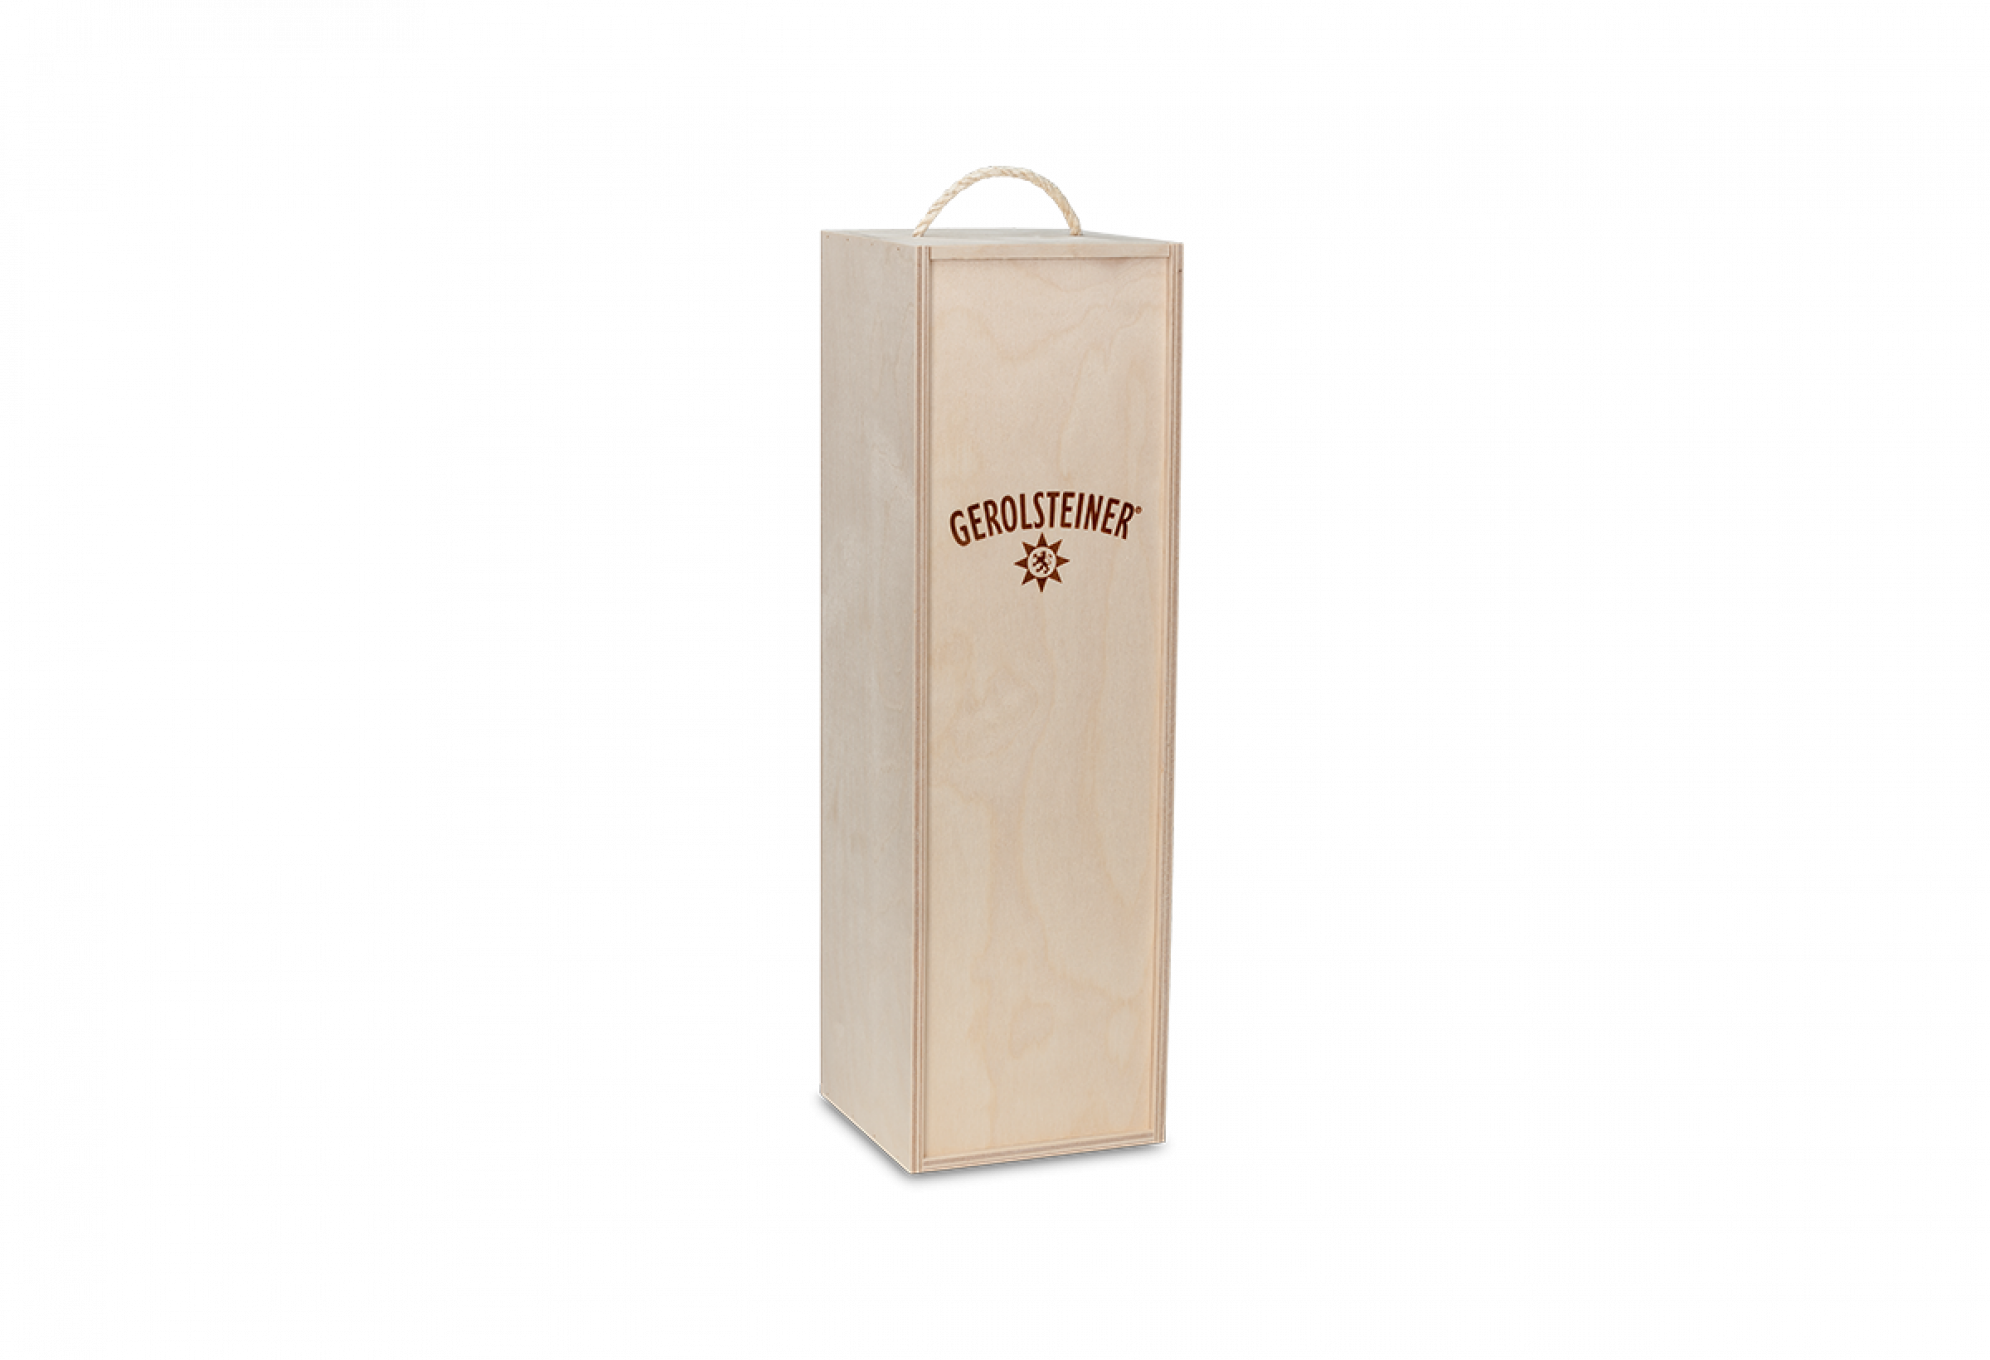 ... Wine box raster of 6 spruce inlay for bottle neck and bottom nailed lid ...  sc 1 st  Scheffauer Holzwaren & Inidual wooden wine boxes and wine packaging - Scheffauer Holzwaren